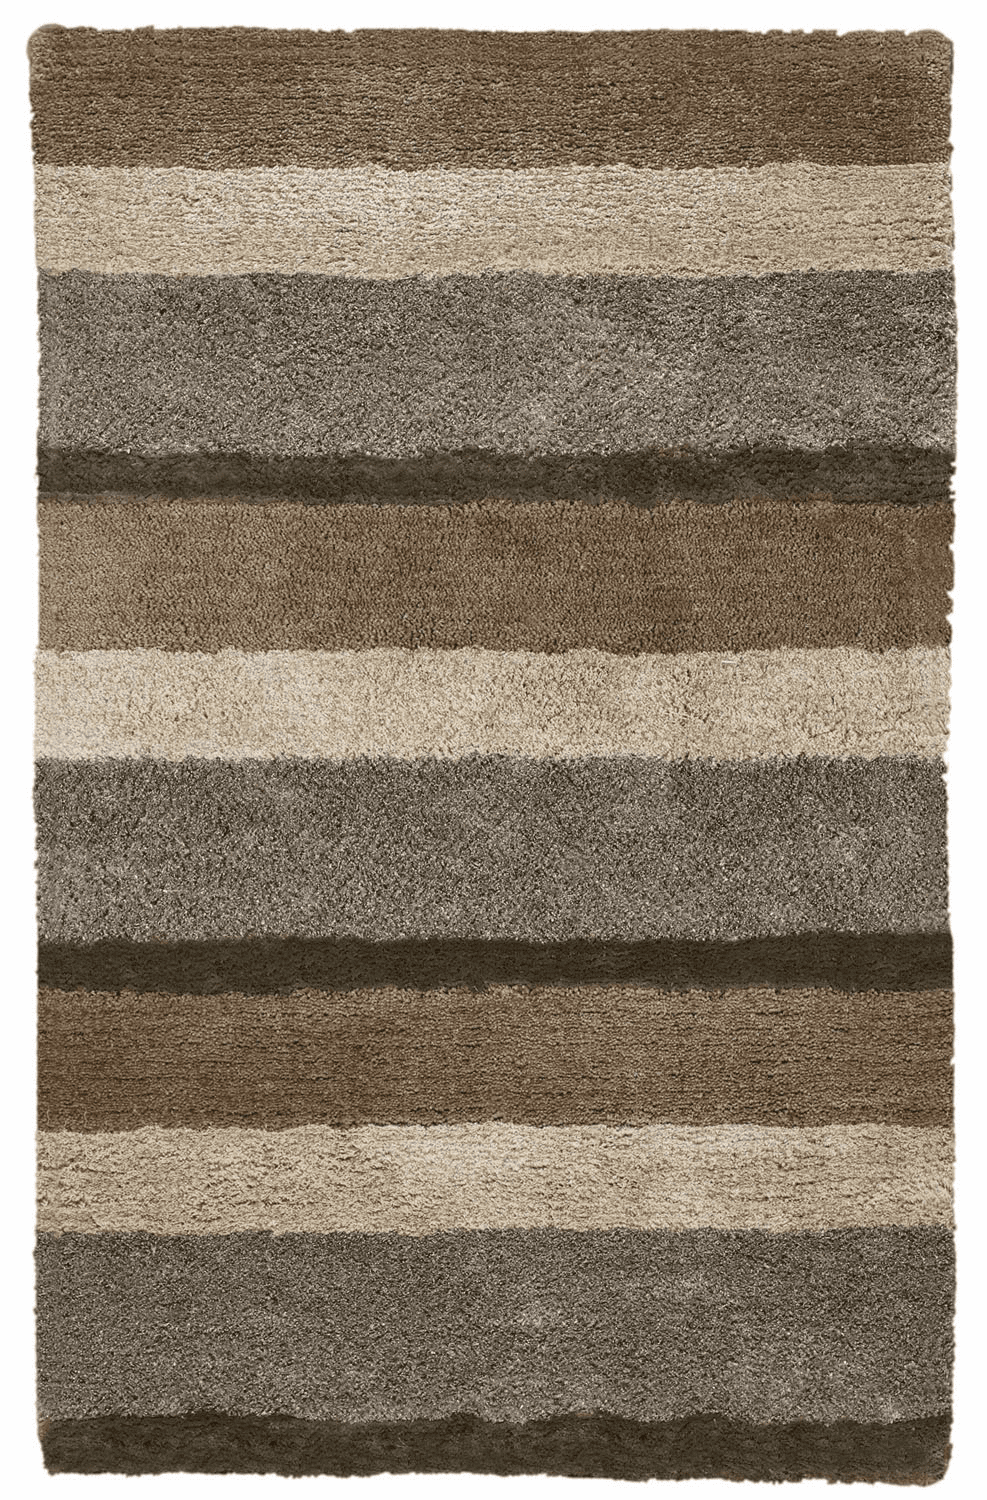 Hand Tufted Beige Multi Rug